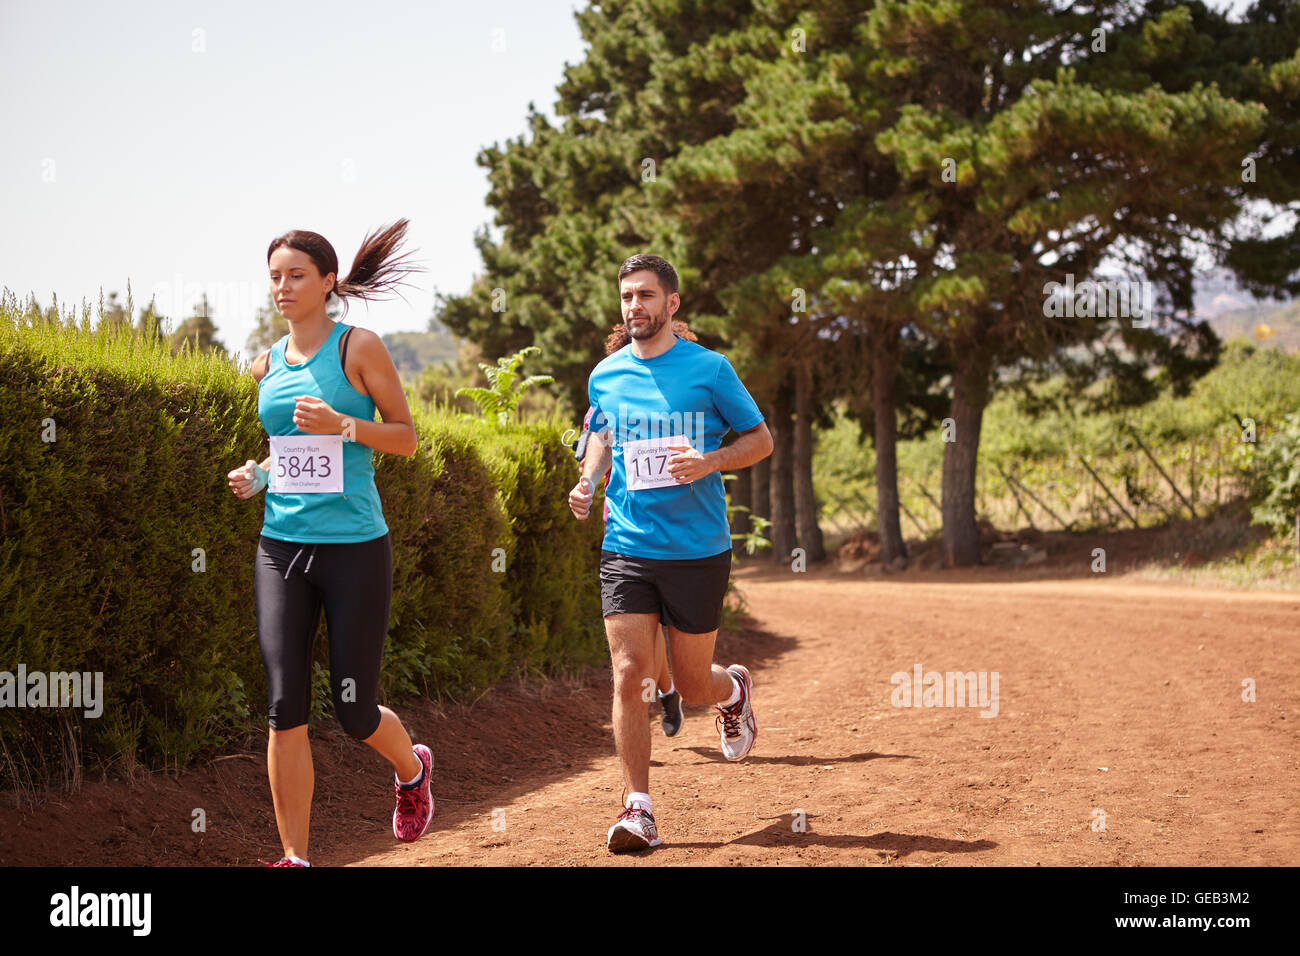 Three distance runners in a race on a gravel path with hedges behind them wearing casual running clothes in the - Stock Image